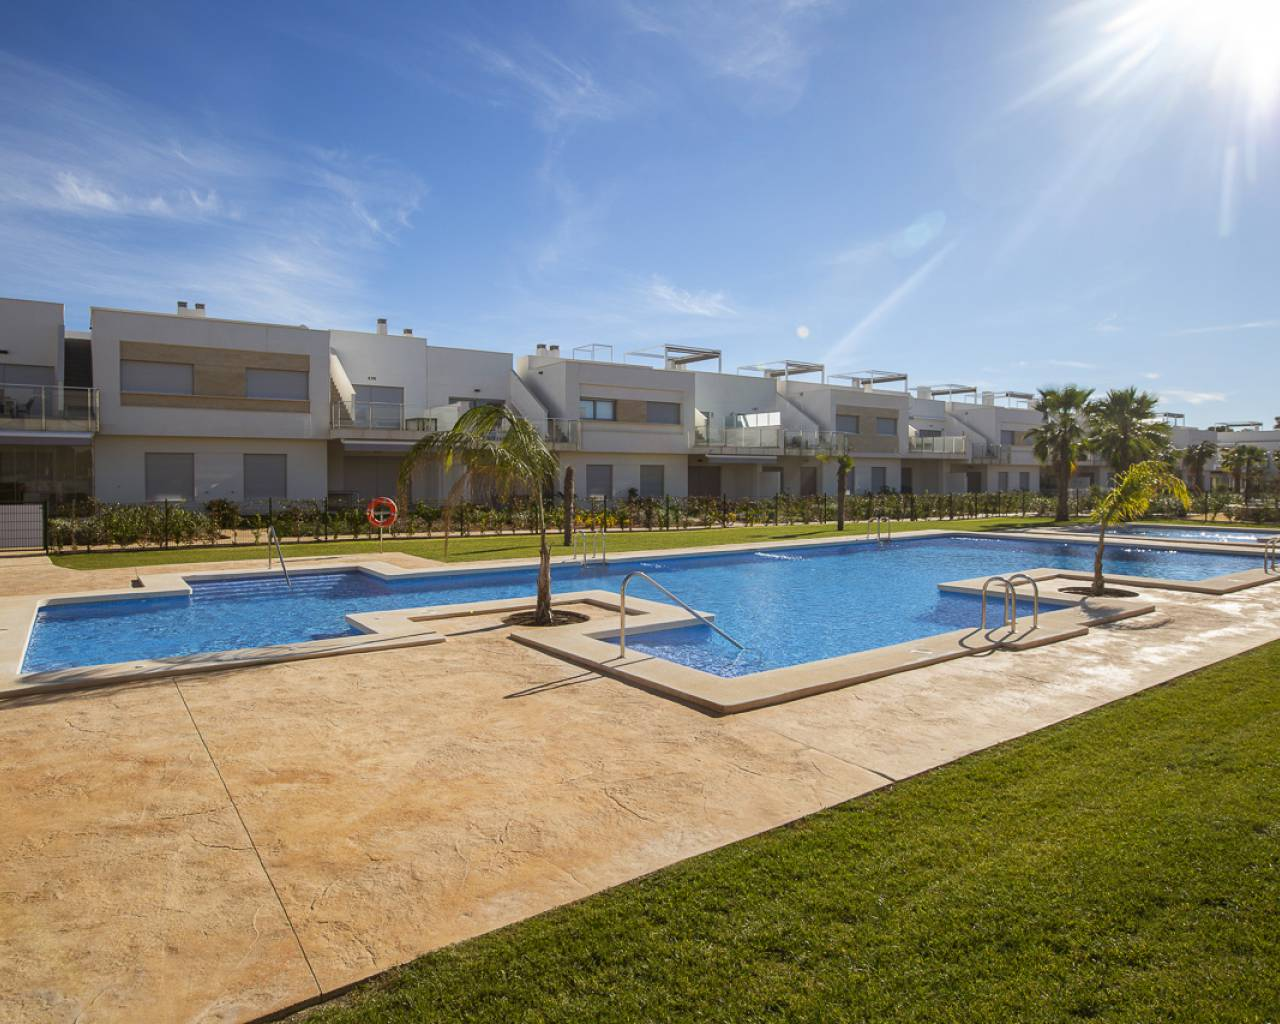 Appartement - Neubauimmobilien - Orihuela - Vistabella Golf